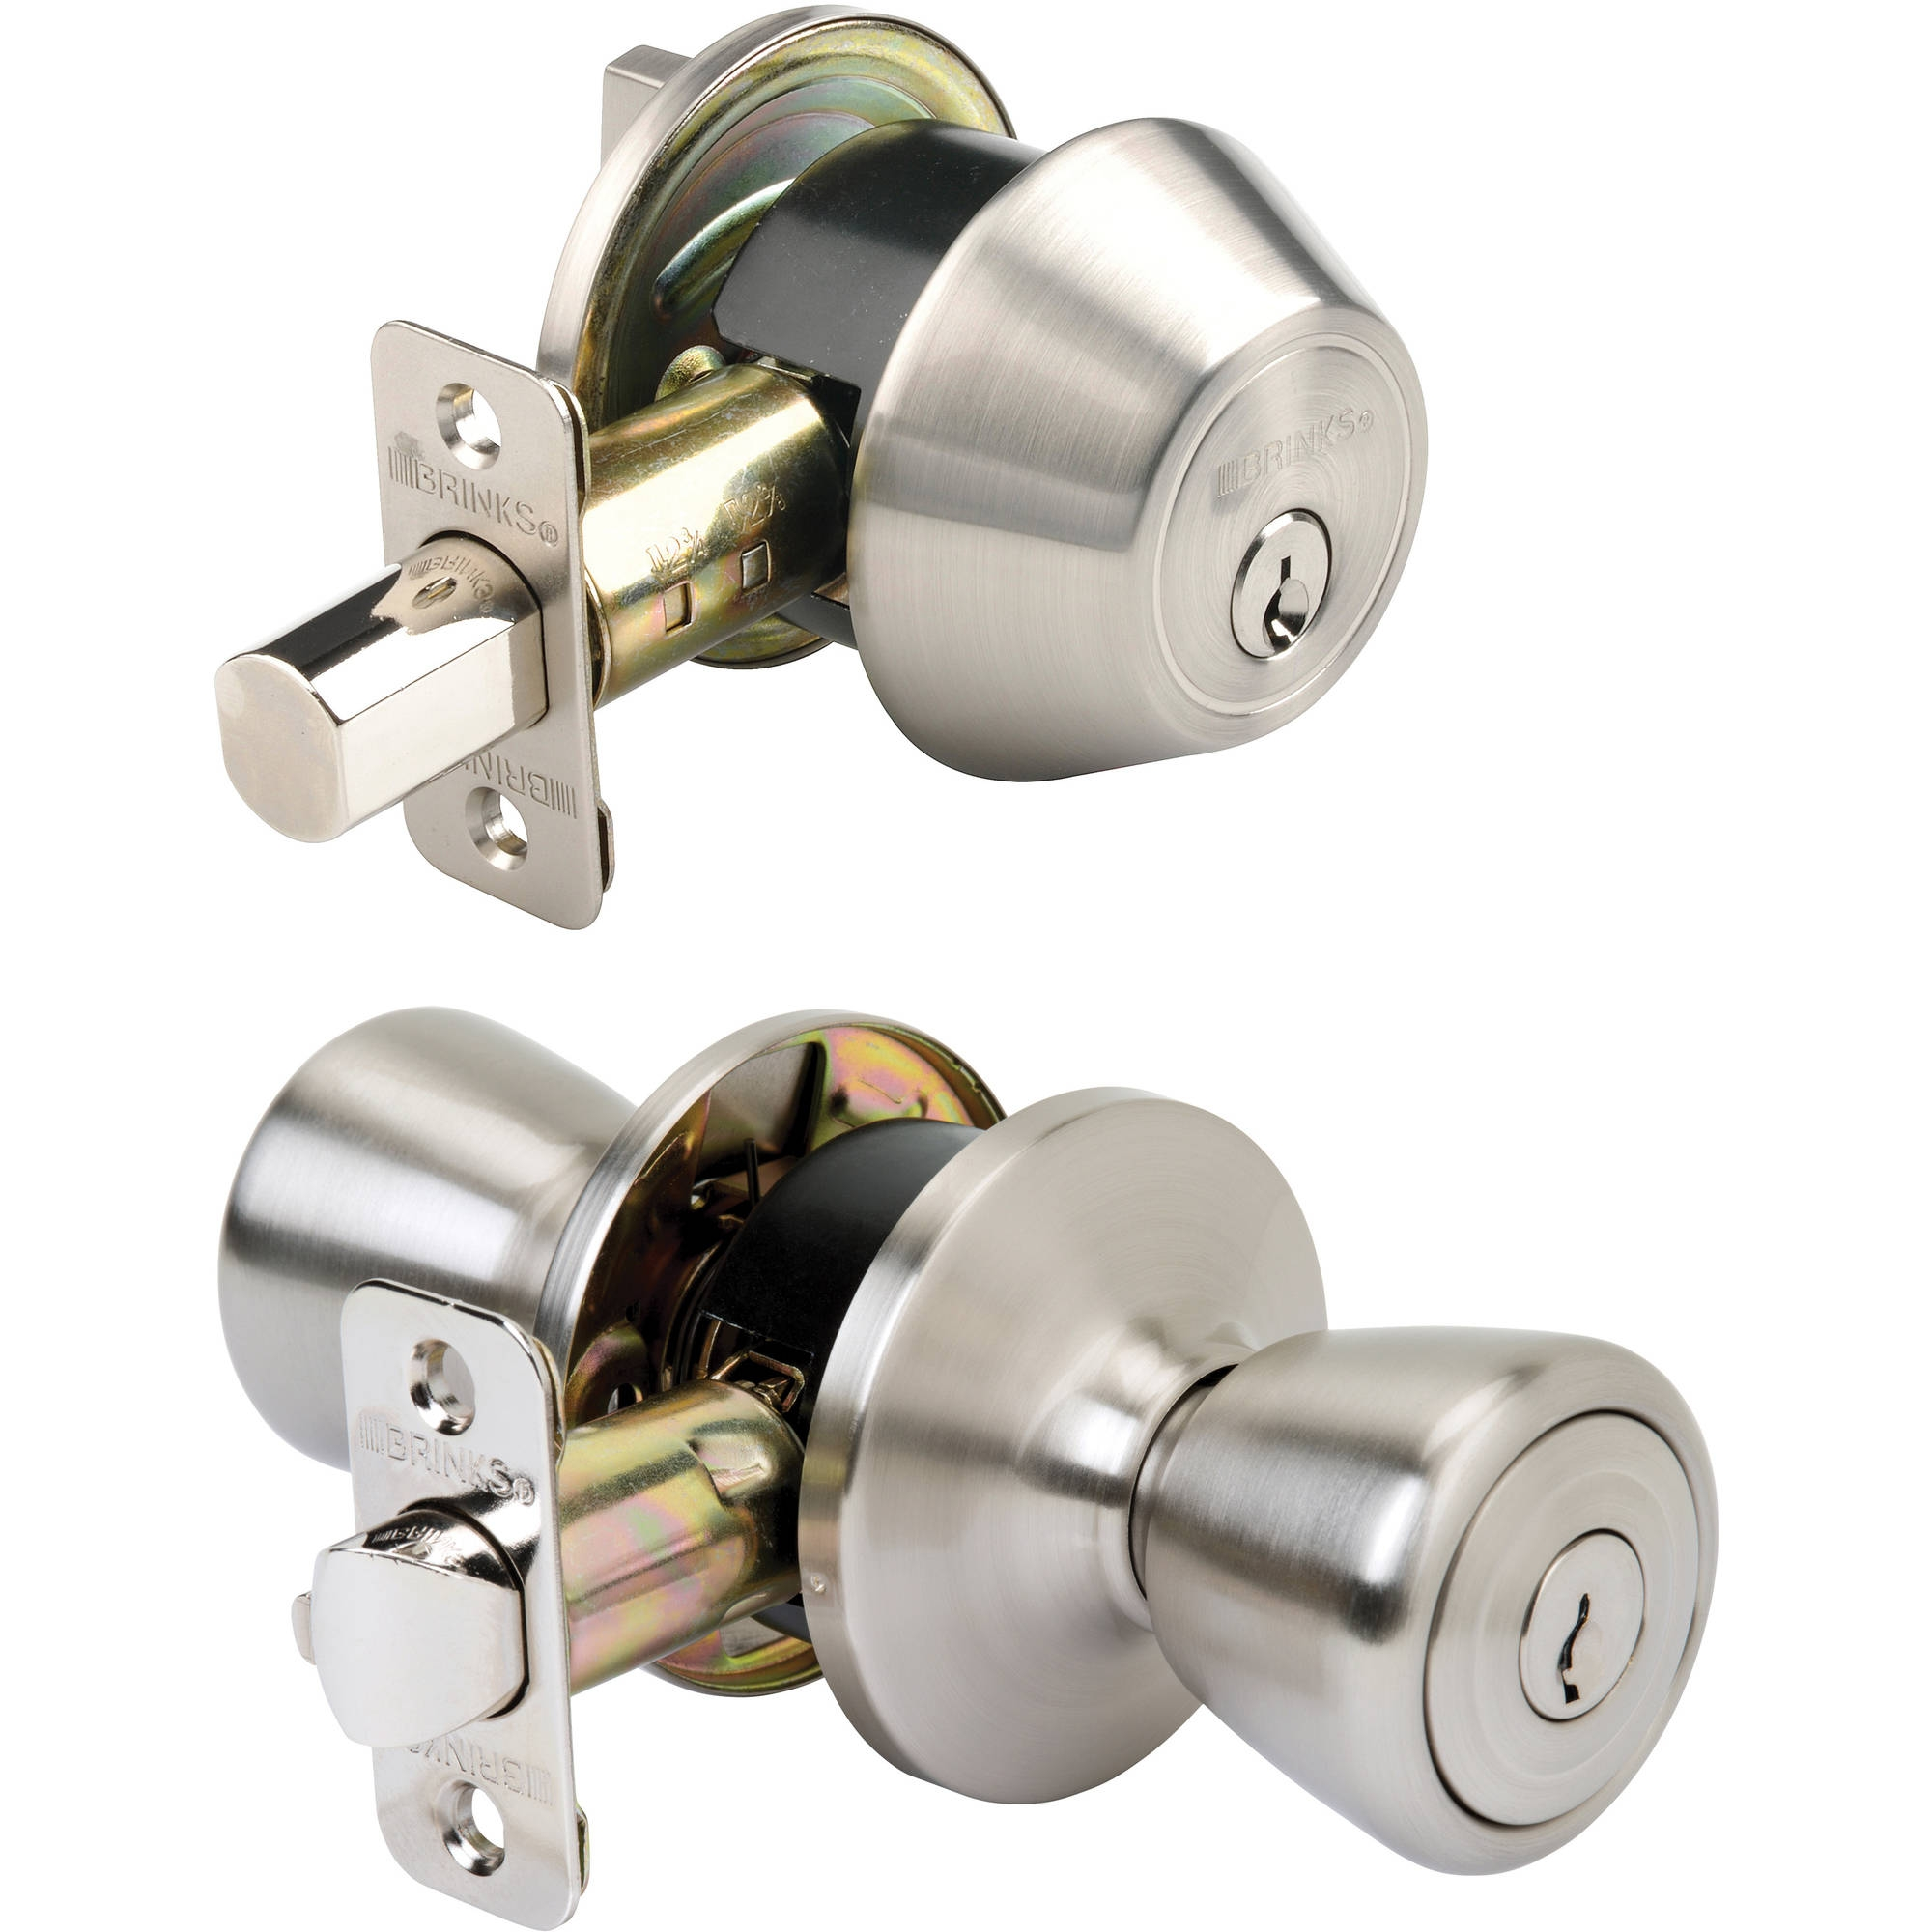 Door Knob With Key Lock On Both Sides